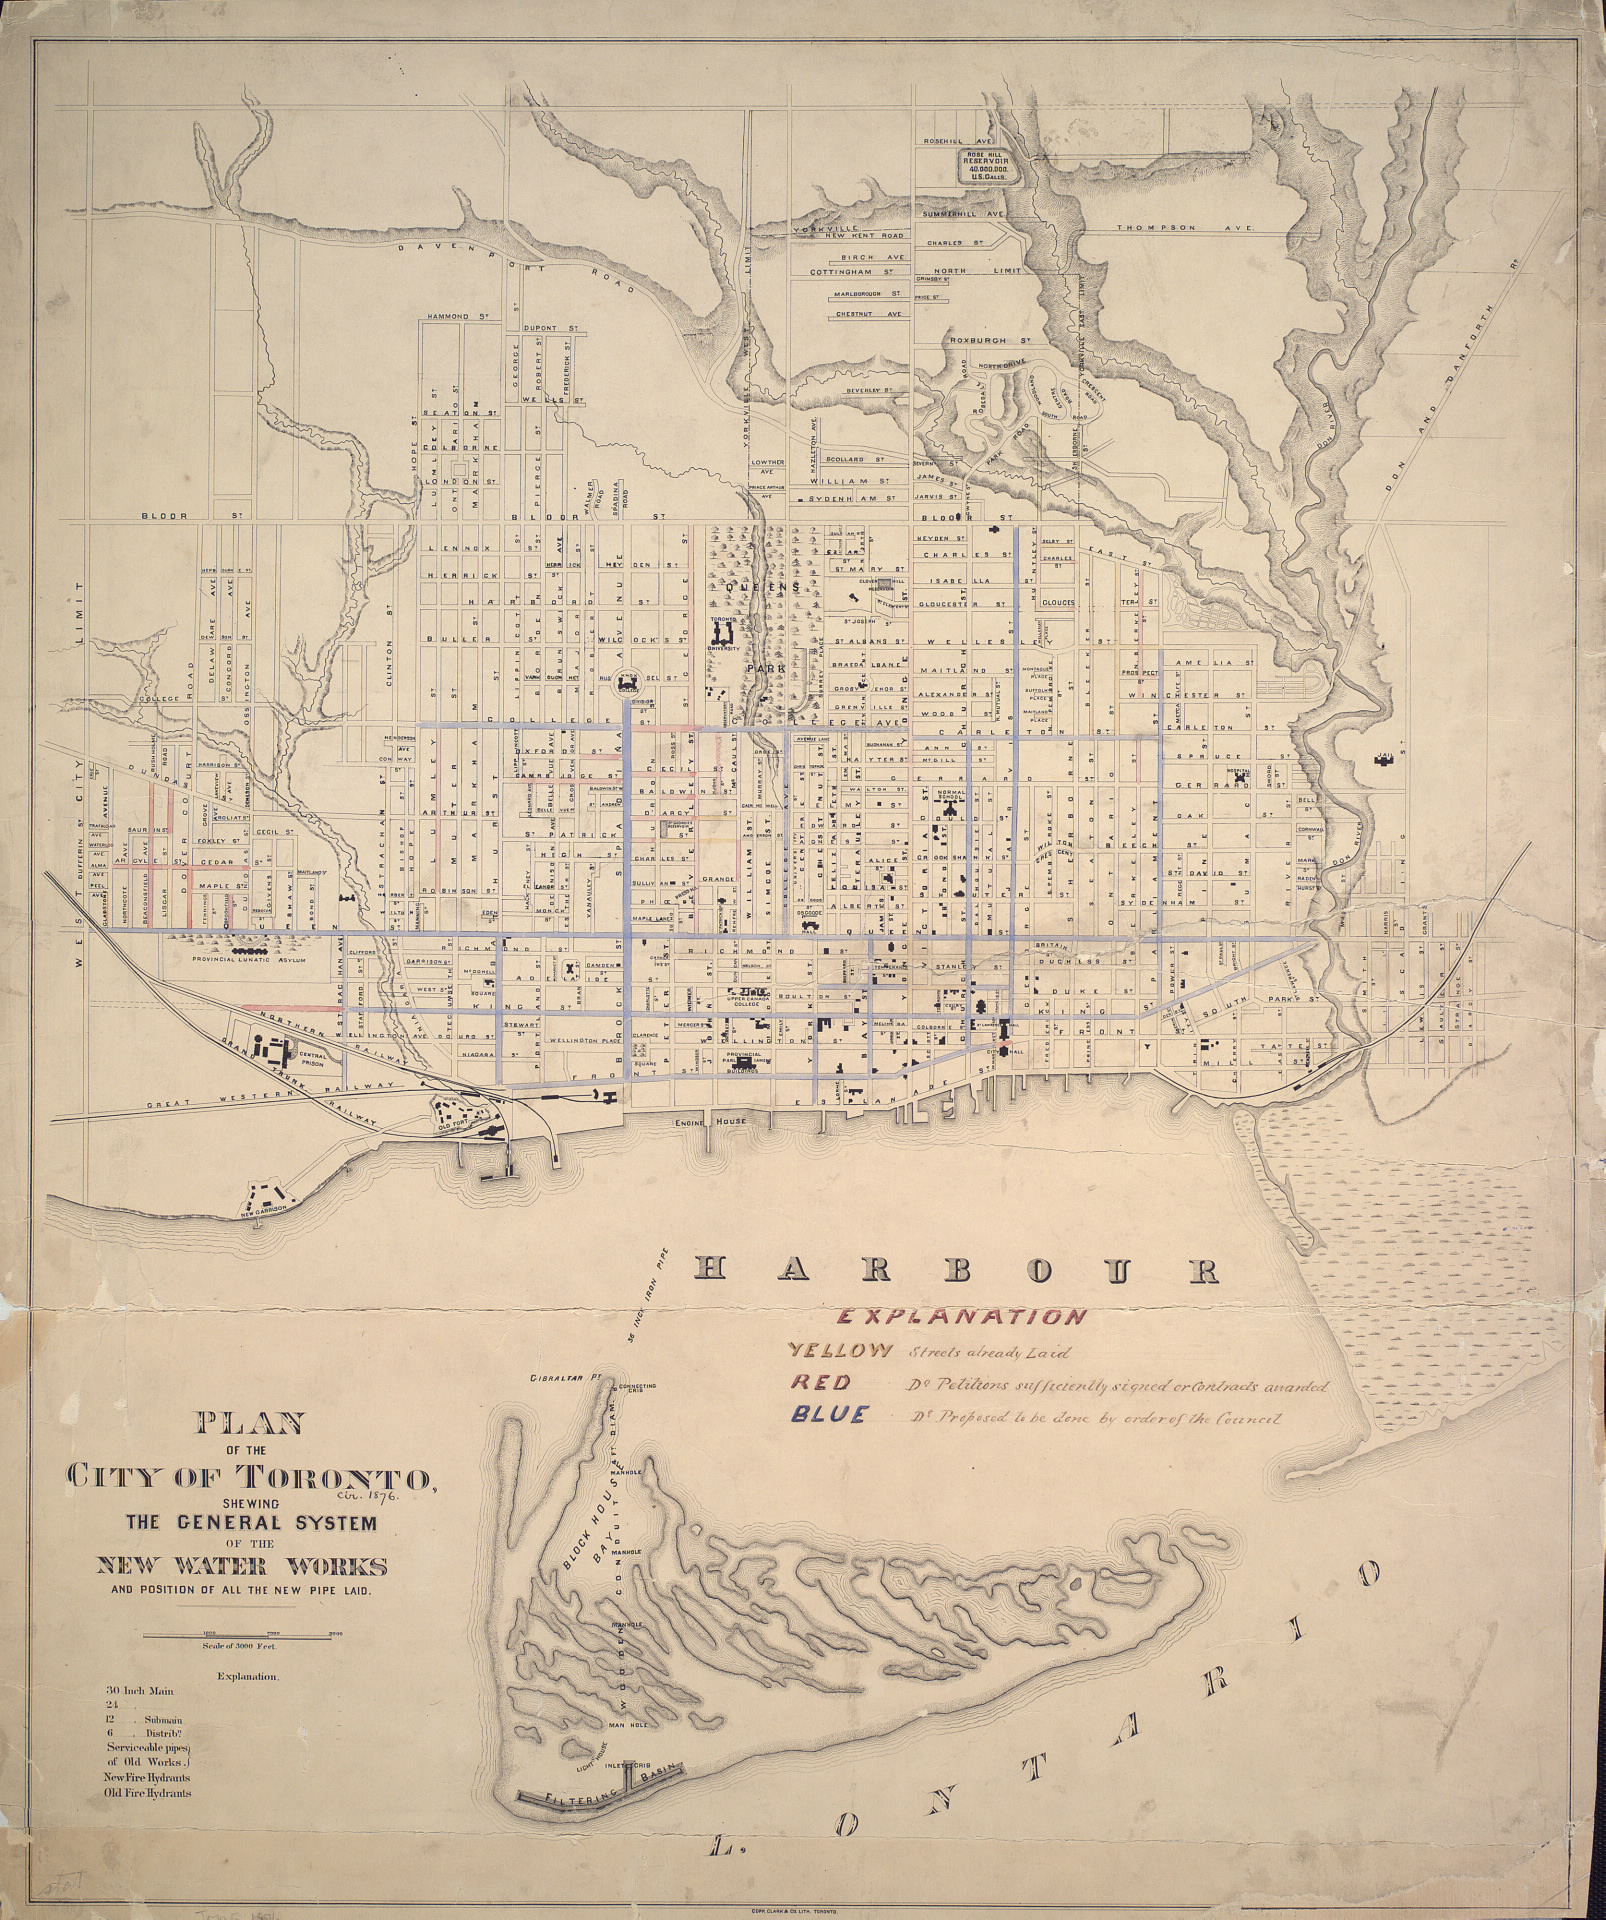 The pipe network in Toronto's inner harbour back in 1876. Existing pipes are in blue and proposed pipes are in red. (Image via  Toronto Public Library )